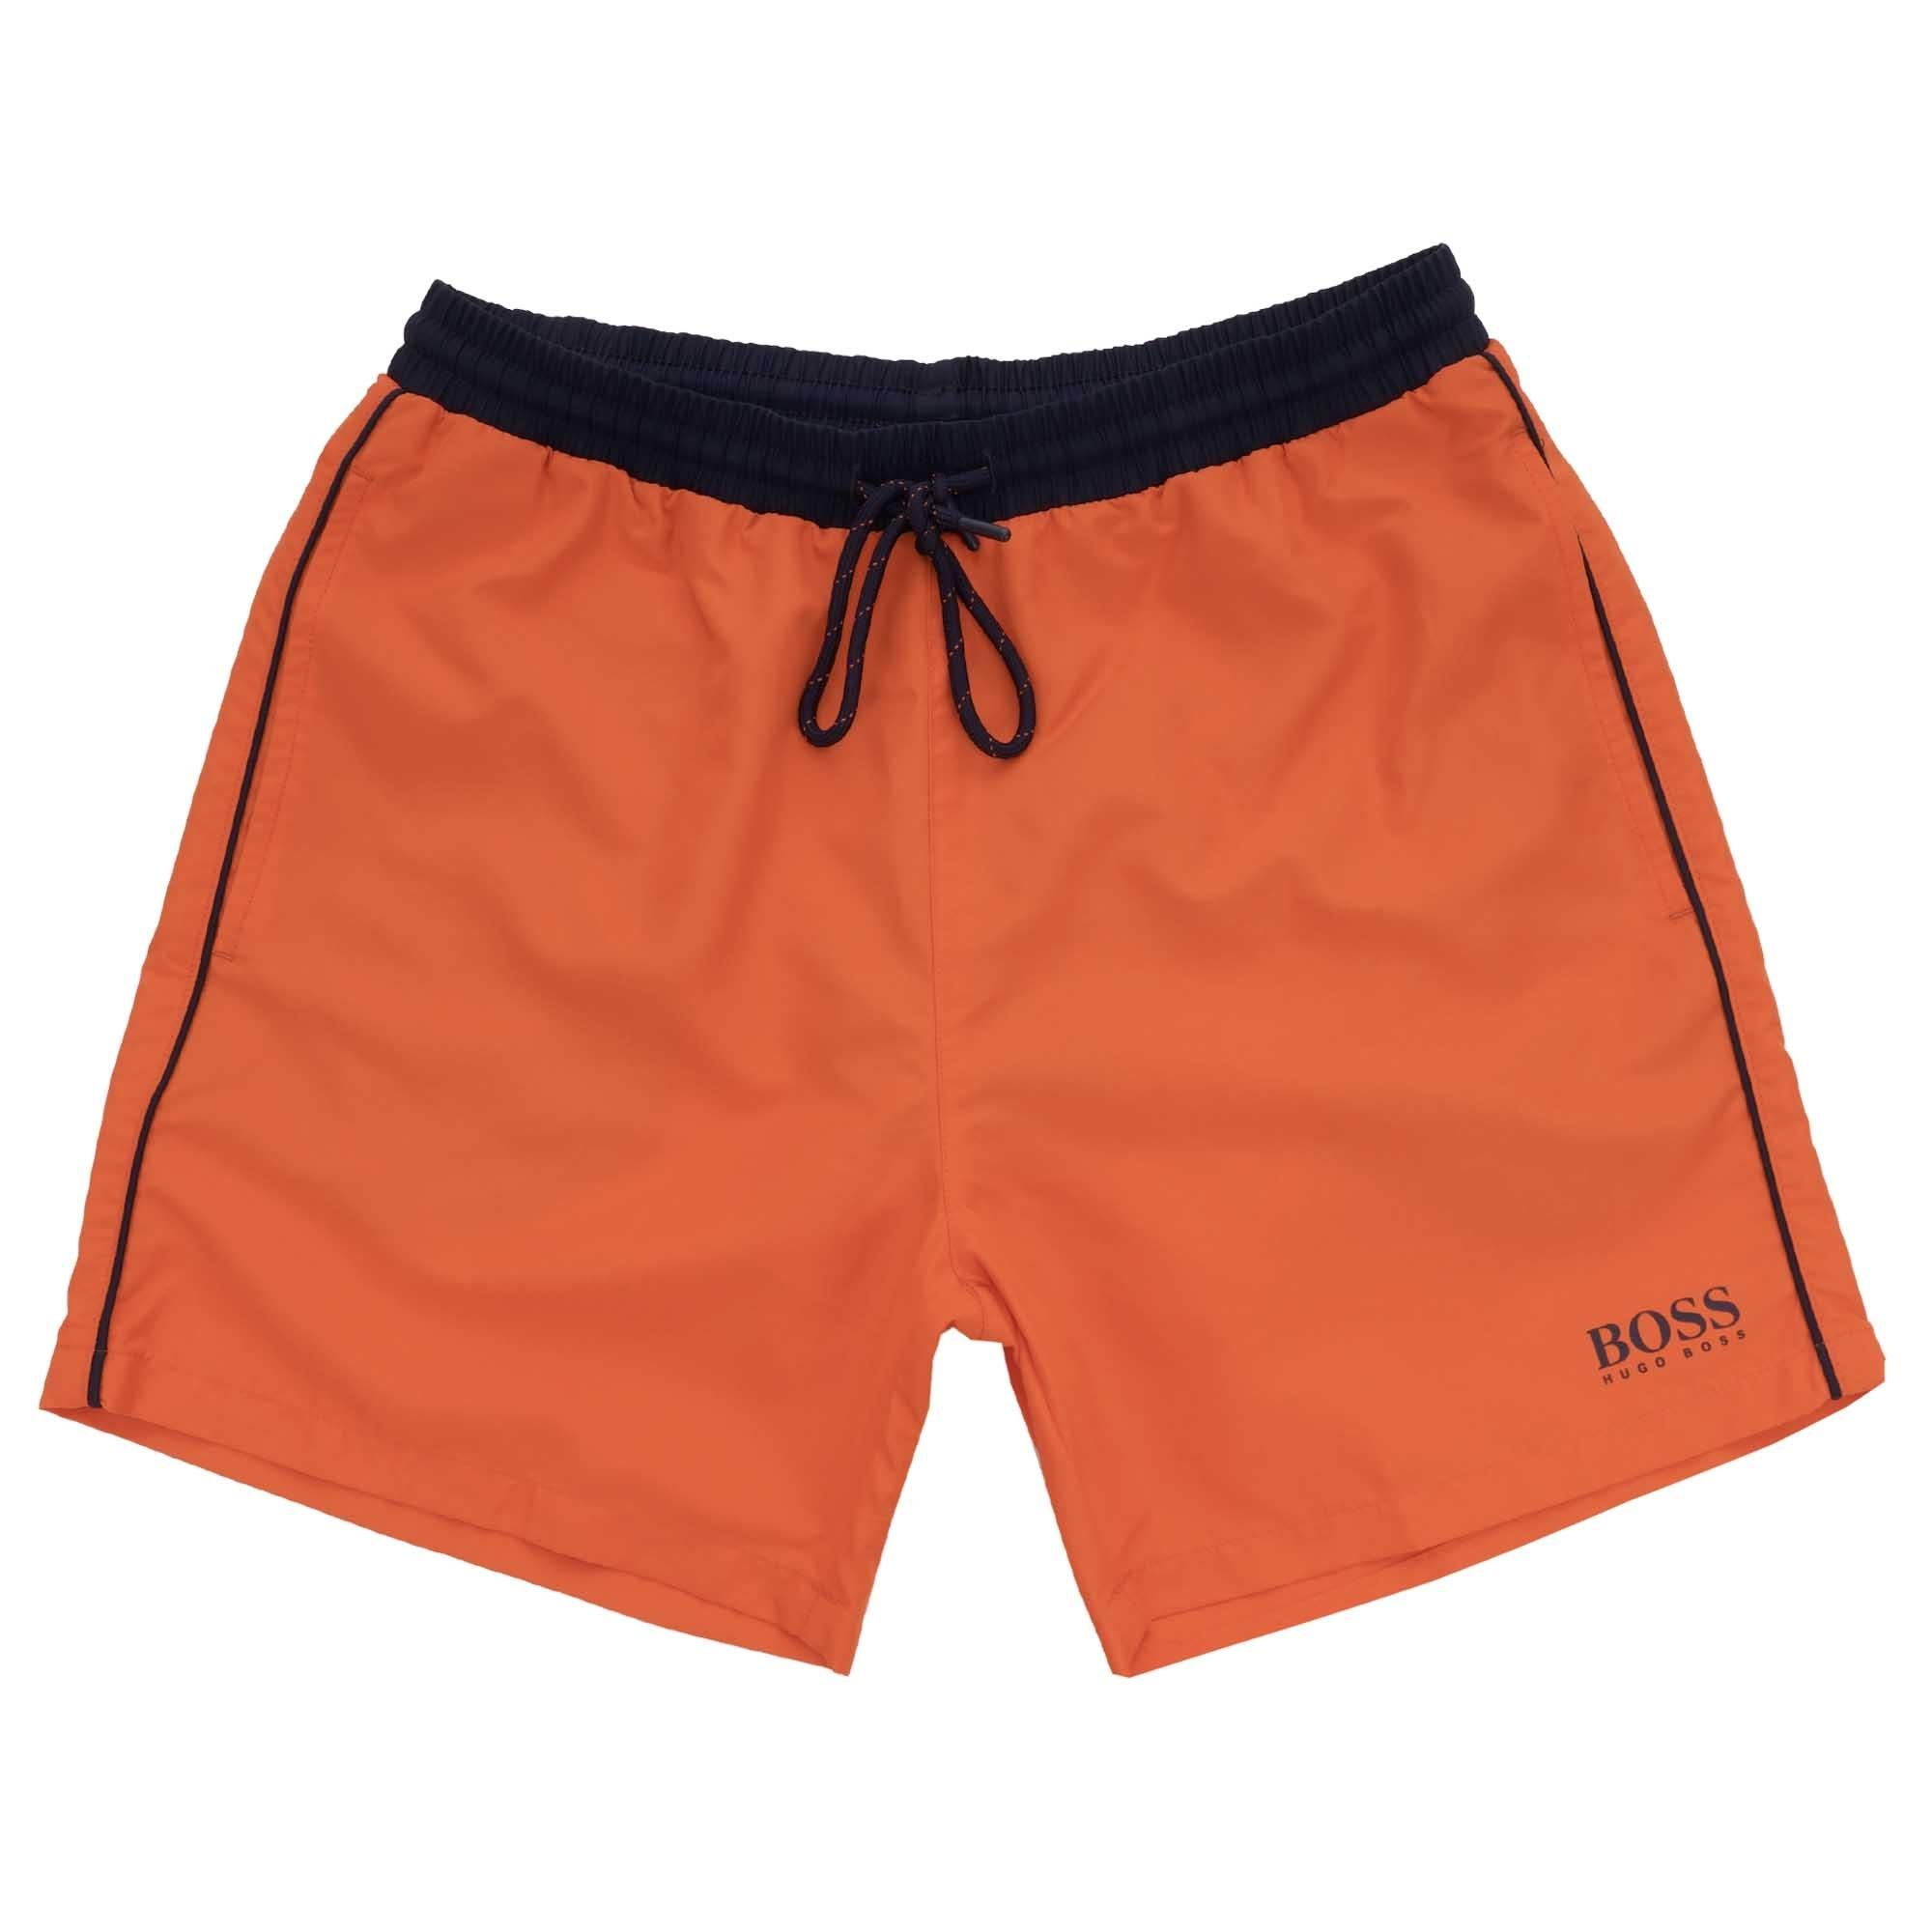 a937fbf9f6540 BOSS - Starfish Swim Shorts - Bright Orange for Men - Lyst. View fullscreen